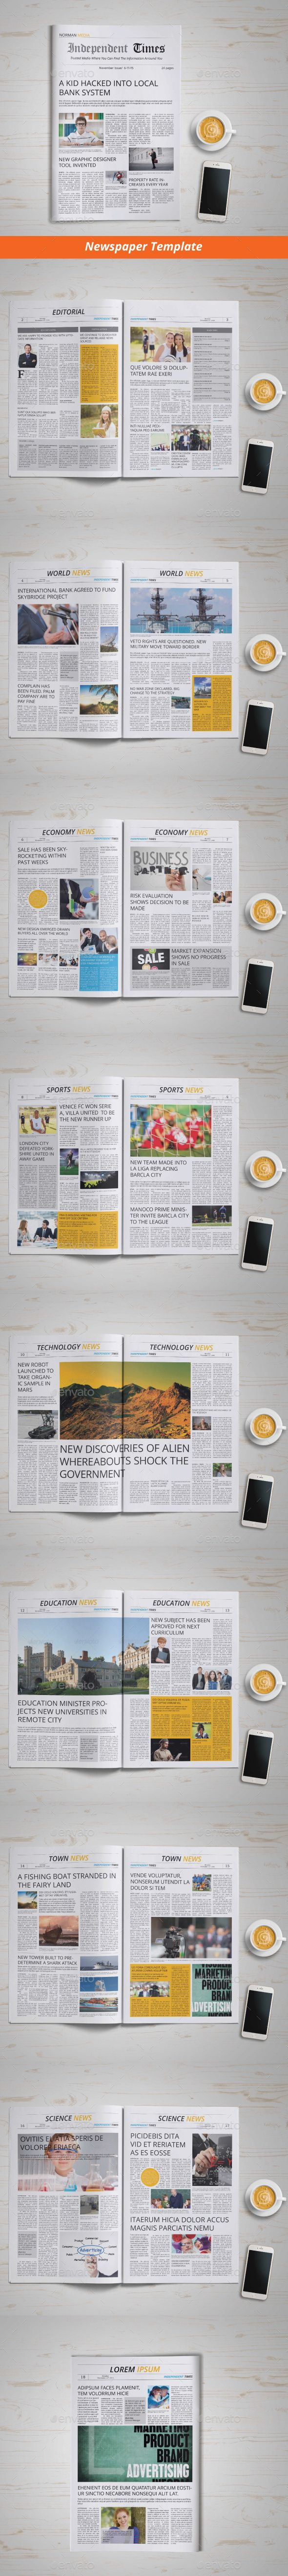 Newspaper Template | 18 Pages - Newsletters Print Templates Download here : https://graphicriver.net/item/newspaper-template-18-pages/13563800?s_rank=65&ref=Al-fatih